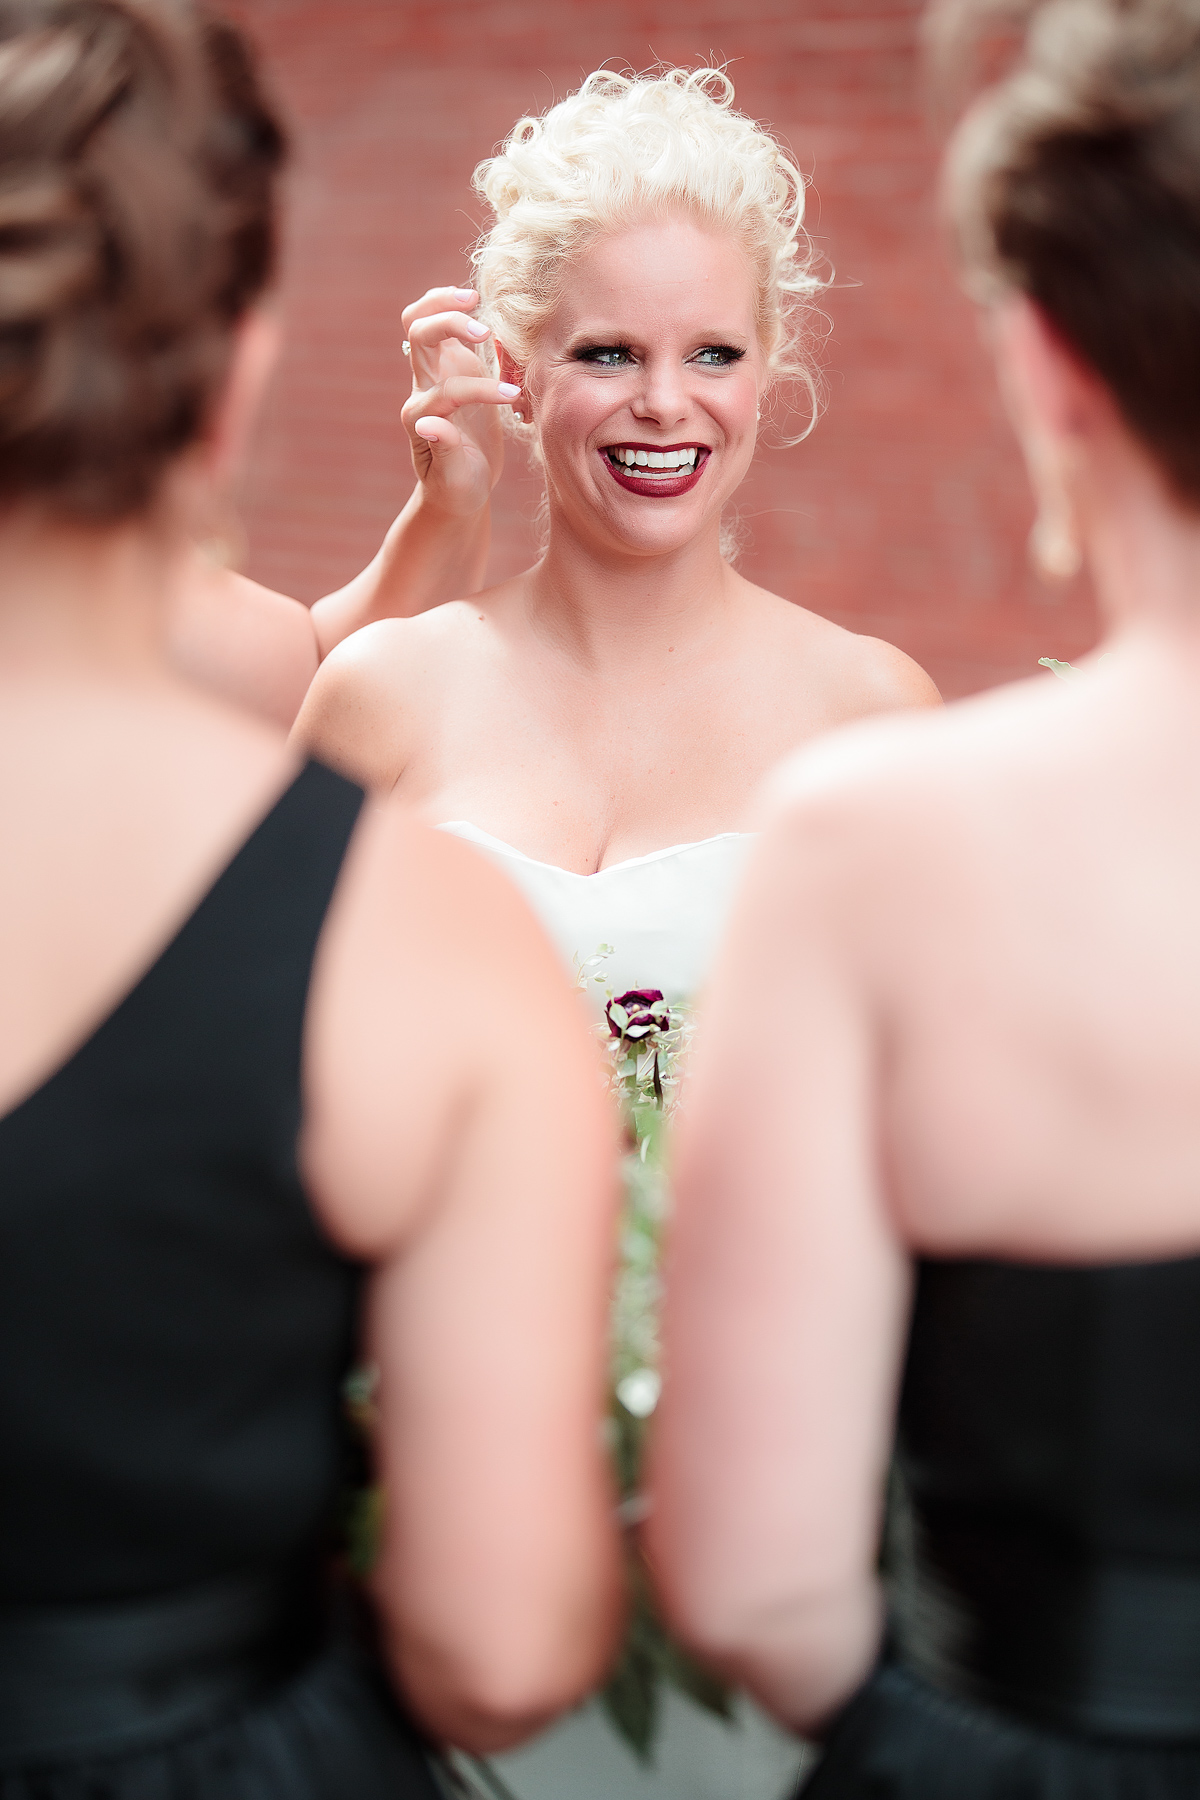 Westin Columbus Wedding- Robb McCormick Photography (46 of 127).jpg